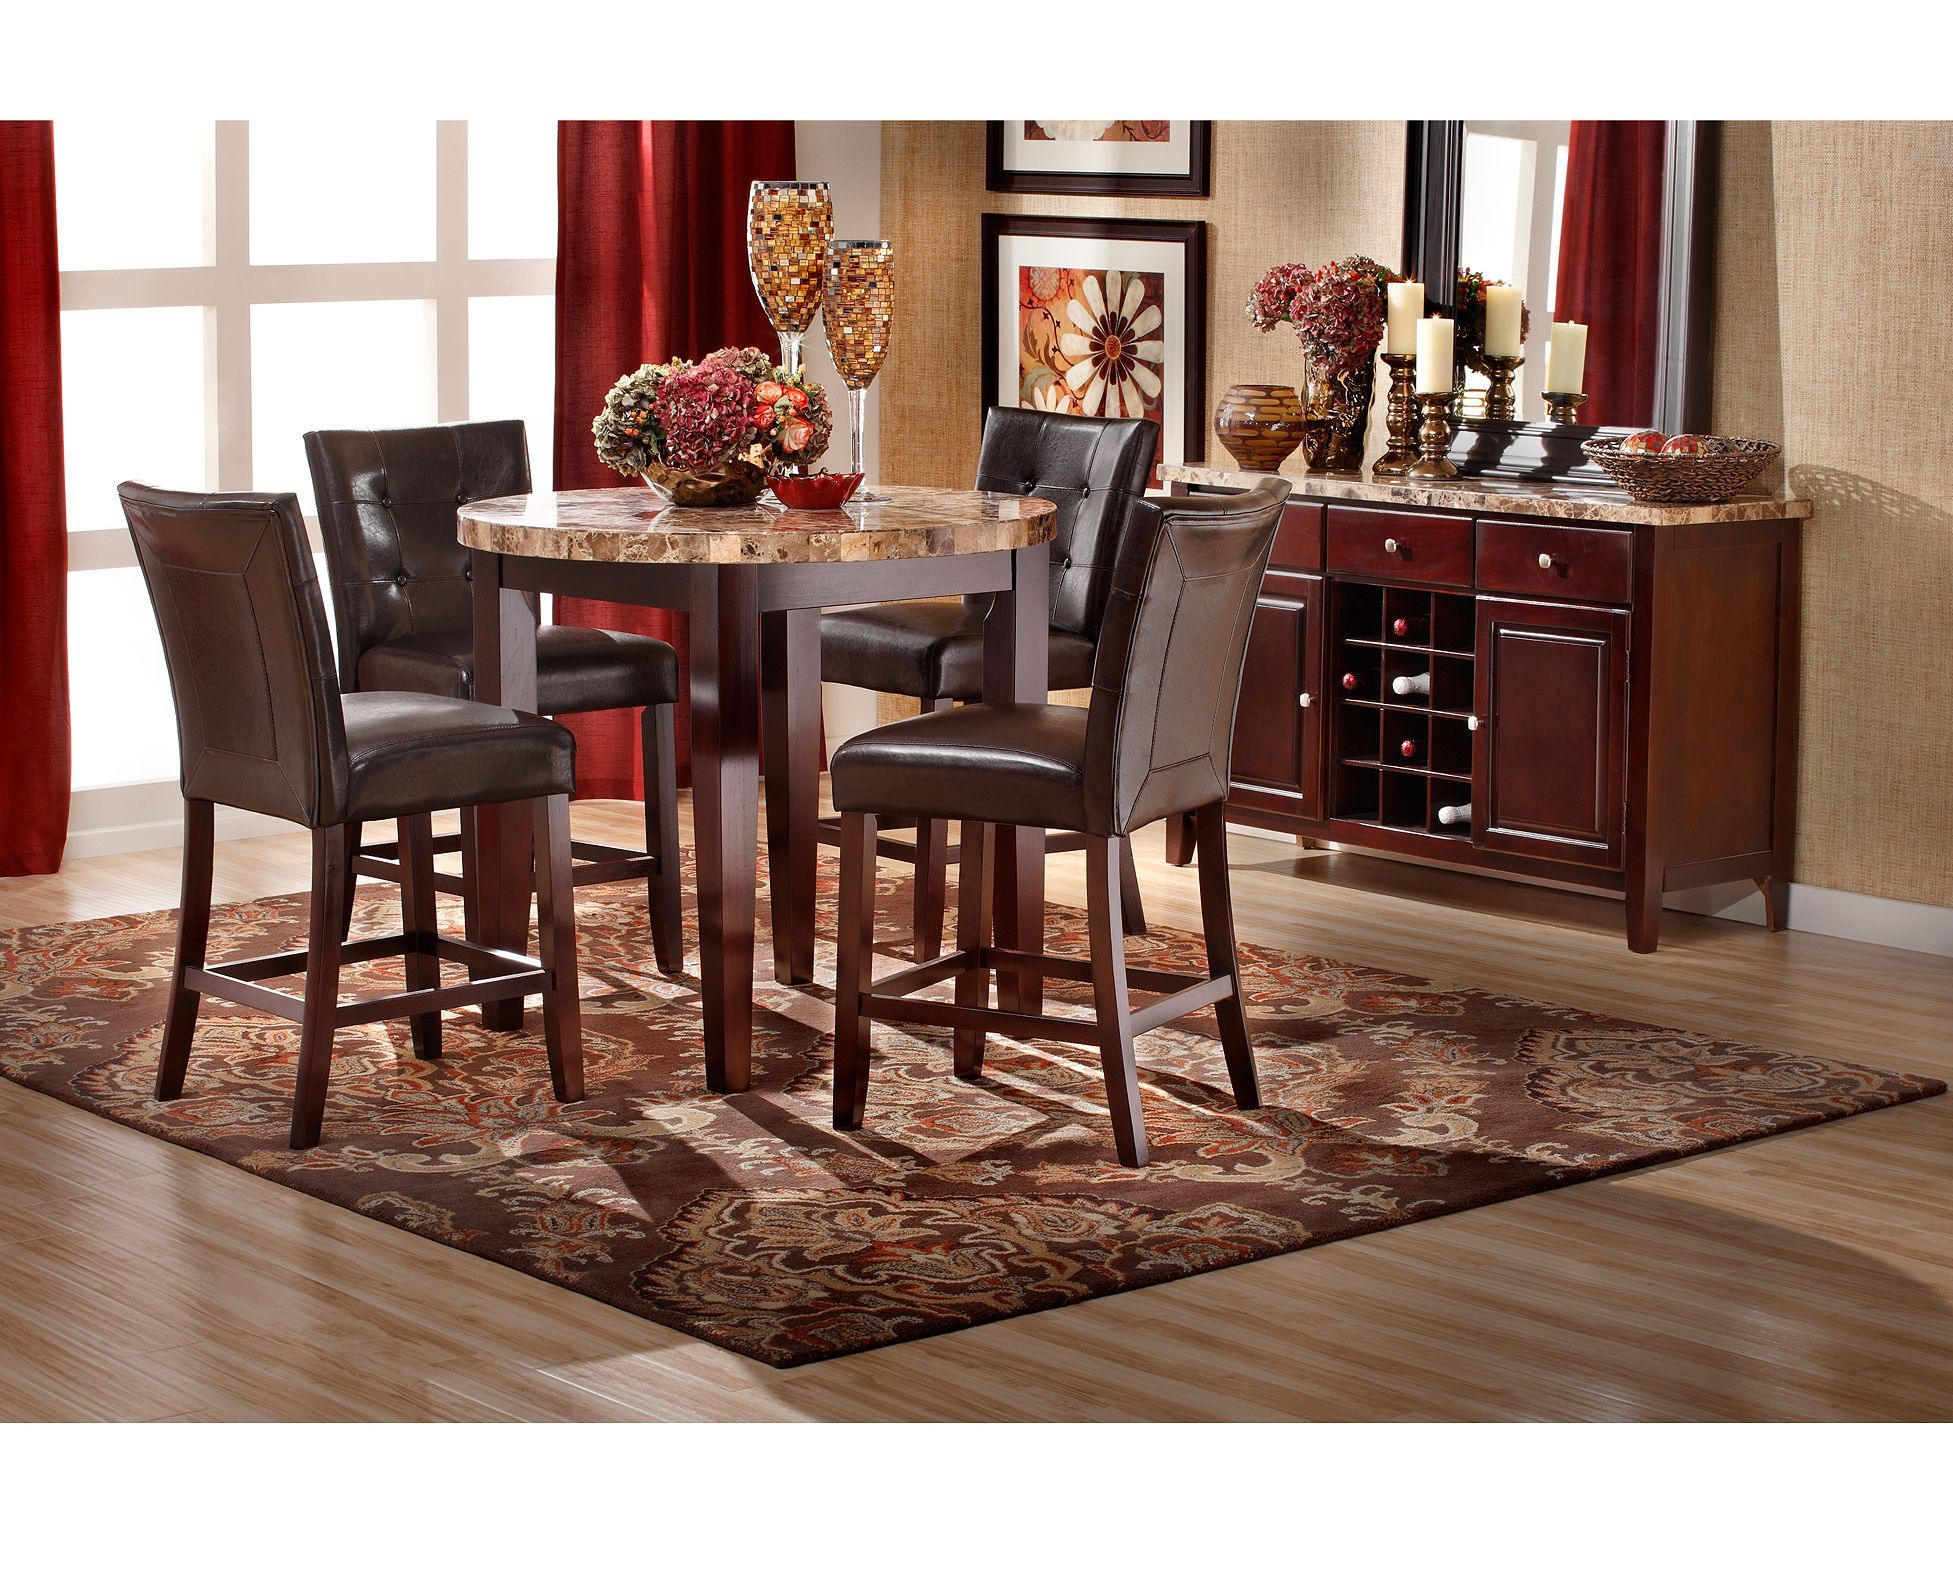 Imperial 3 Pc. Pub Table Set  sc 1 st  Pinterest & Imperial 3 Pc. Pub Table Set | Pub table sets and PC